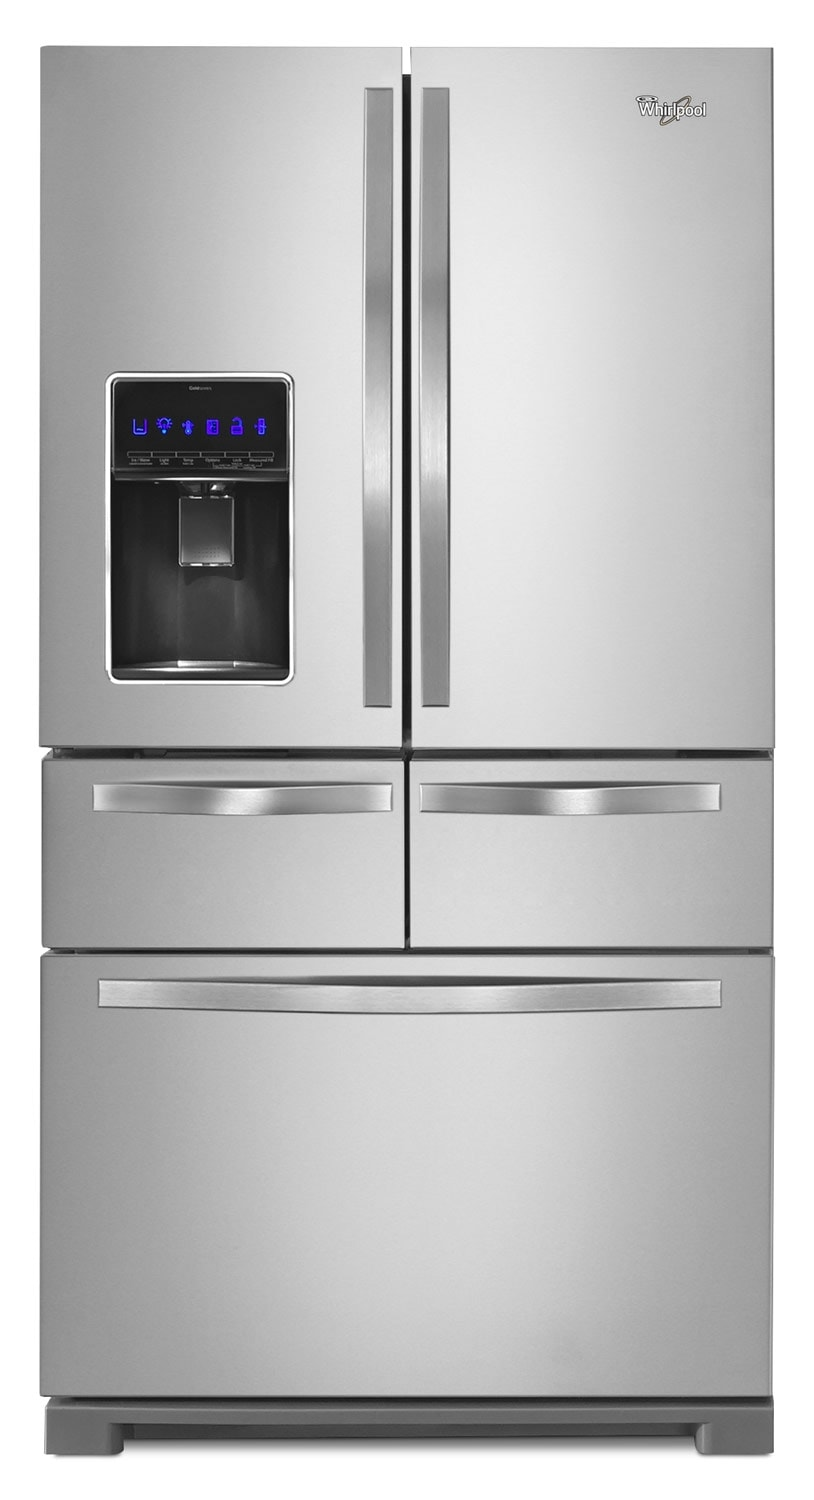 Refrigerators and Freezers - Whirlpool Stainless Steel French Door Refrigerator (25.8 Cu. Ft.) - WRV996FDEM